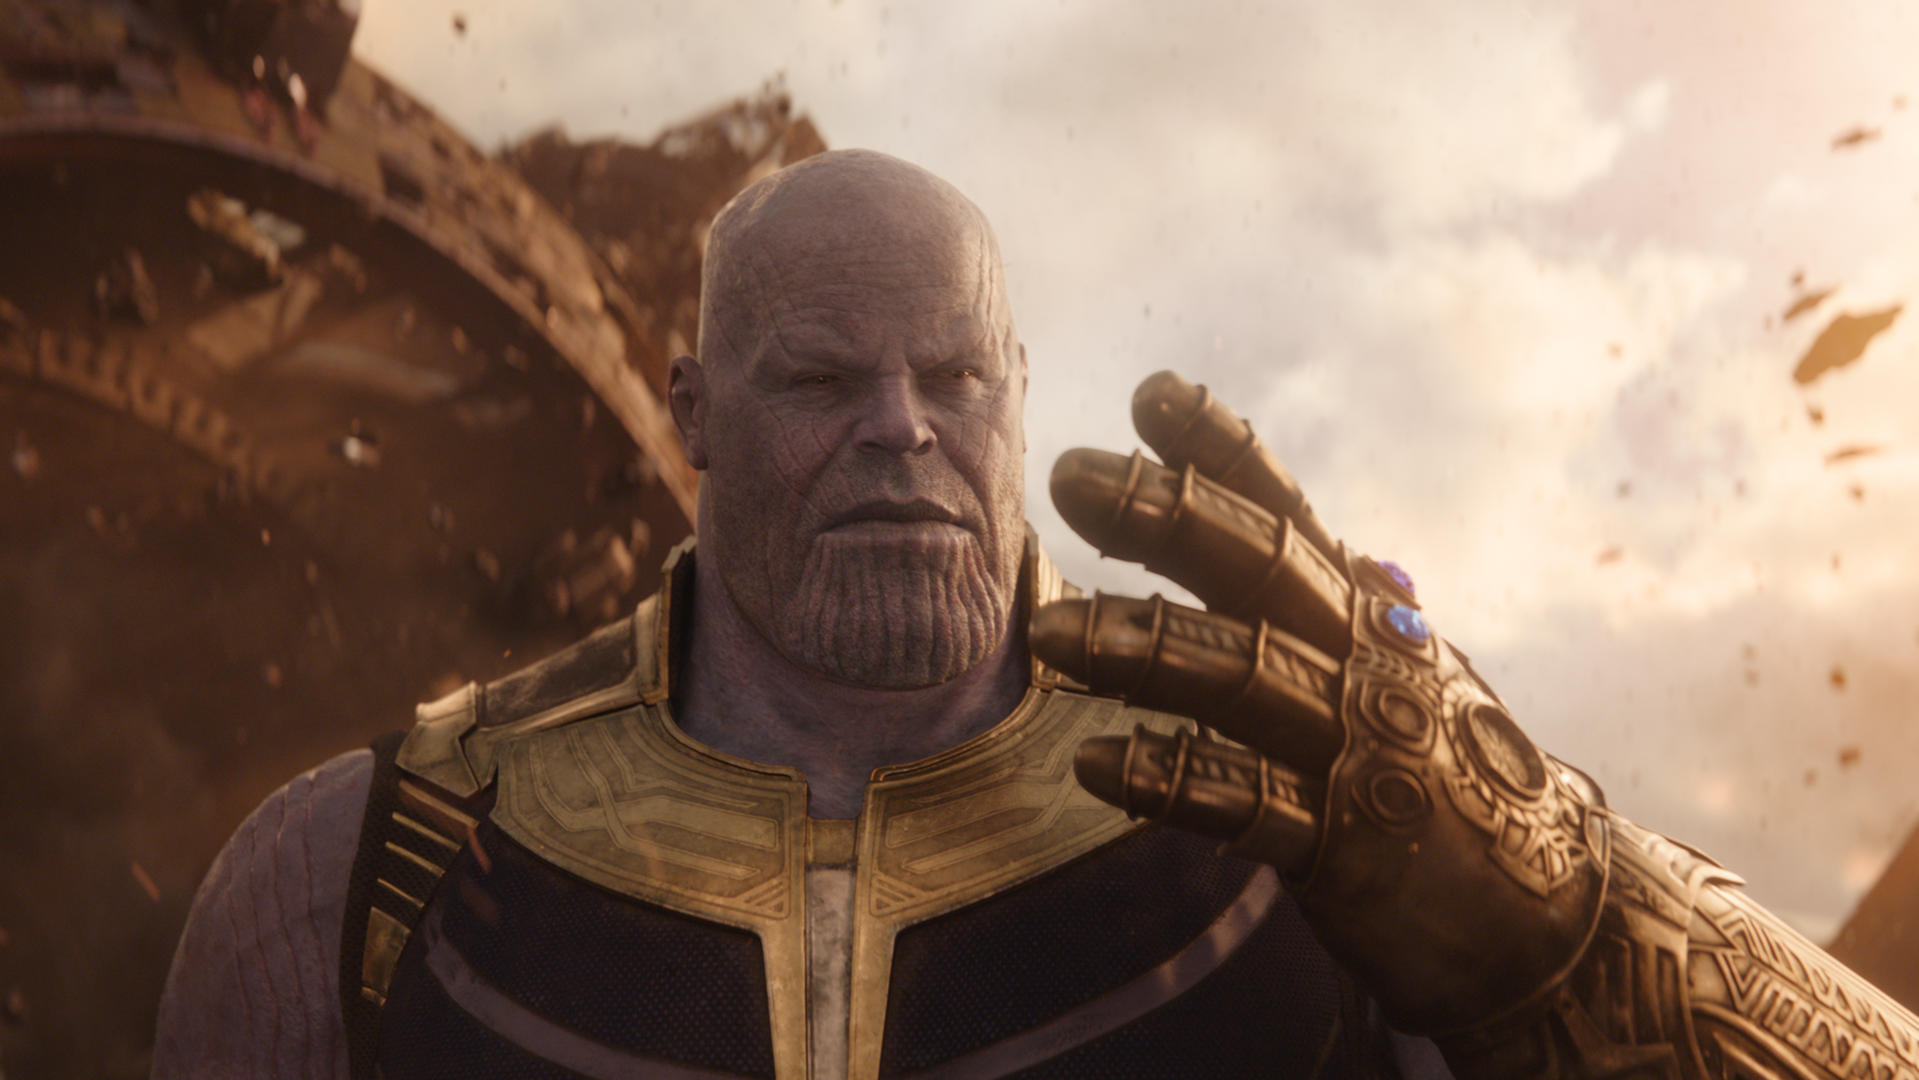 This Pencil-Drawn Thanos Is Beautiful And Very Angry